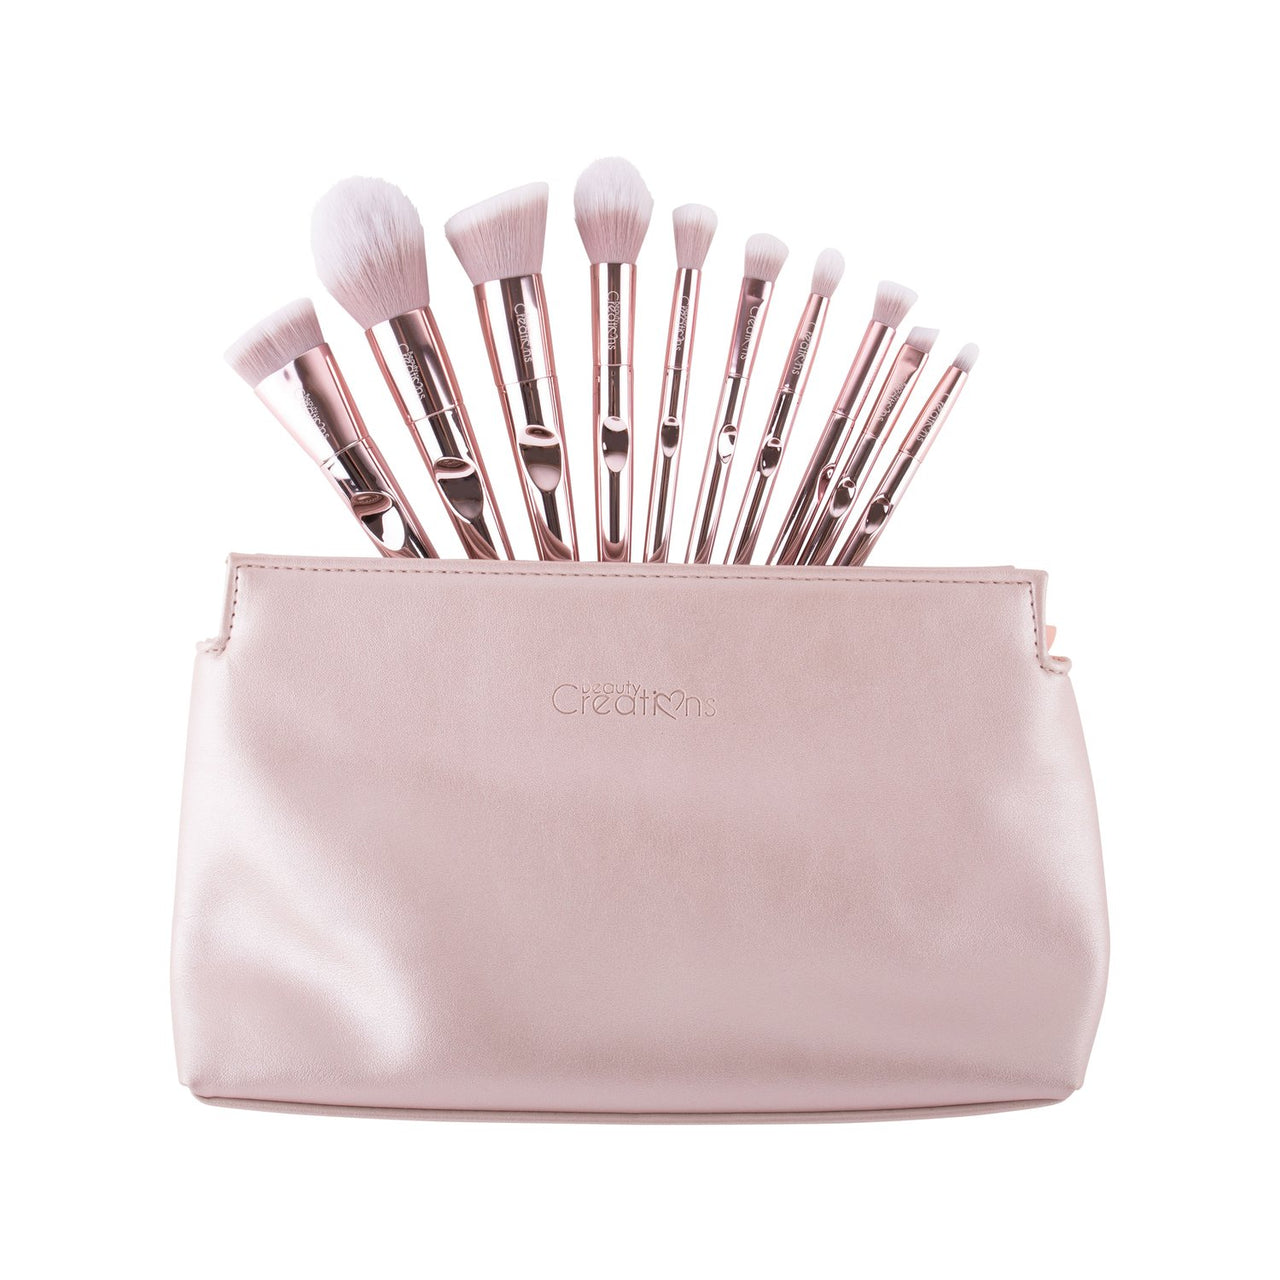 10BCL : Beauty Creations  Floral Bloom Champagne Luxe 10 PC Brush Set Whoelsale-Cosmeticholic